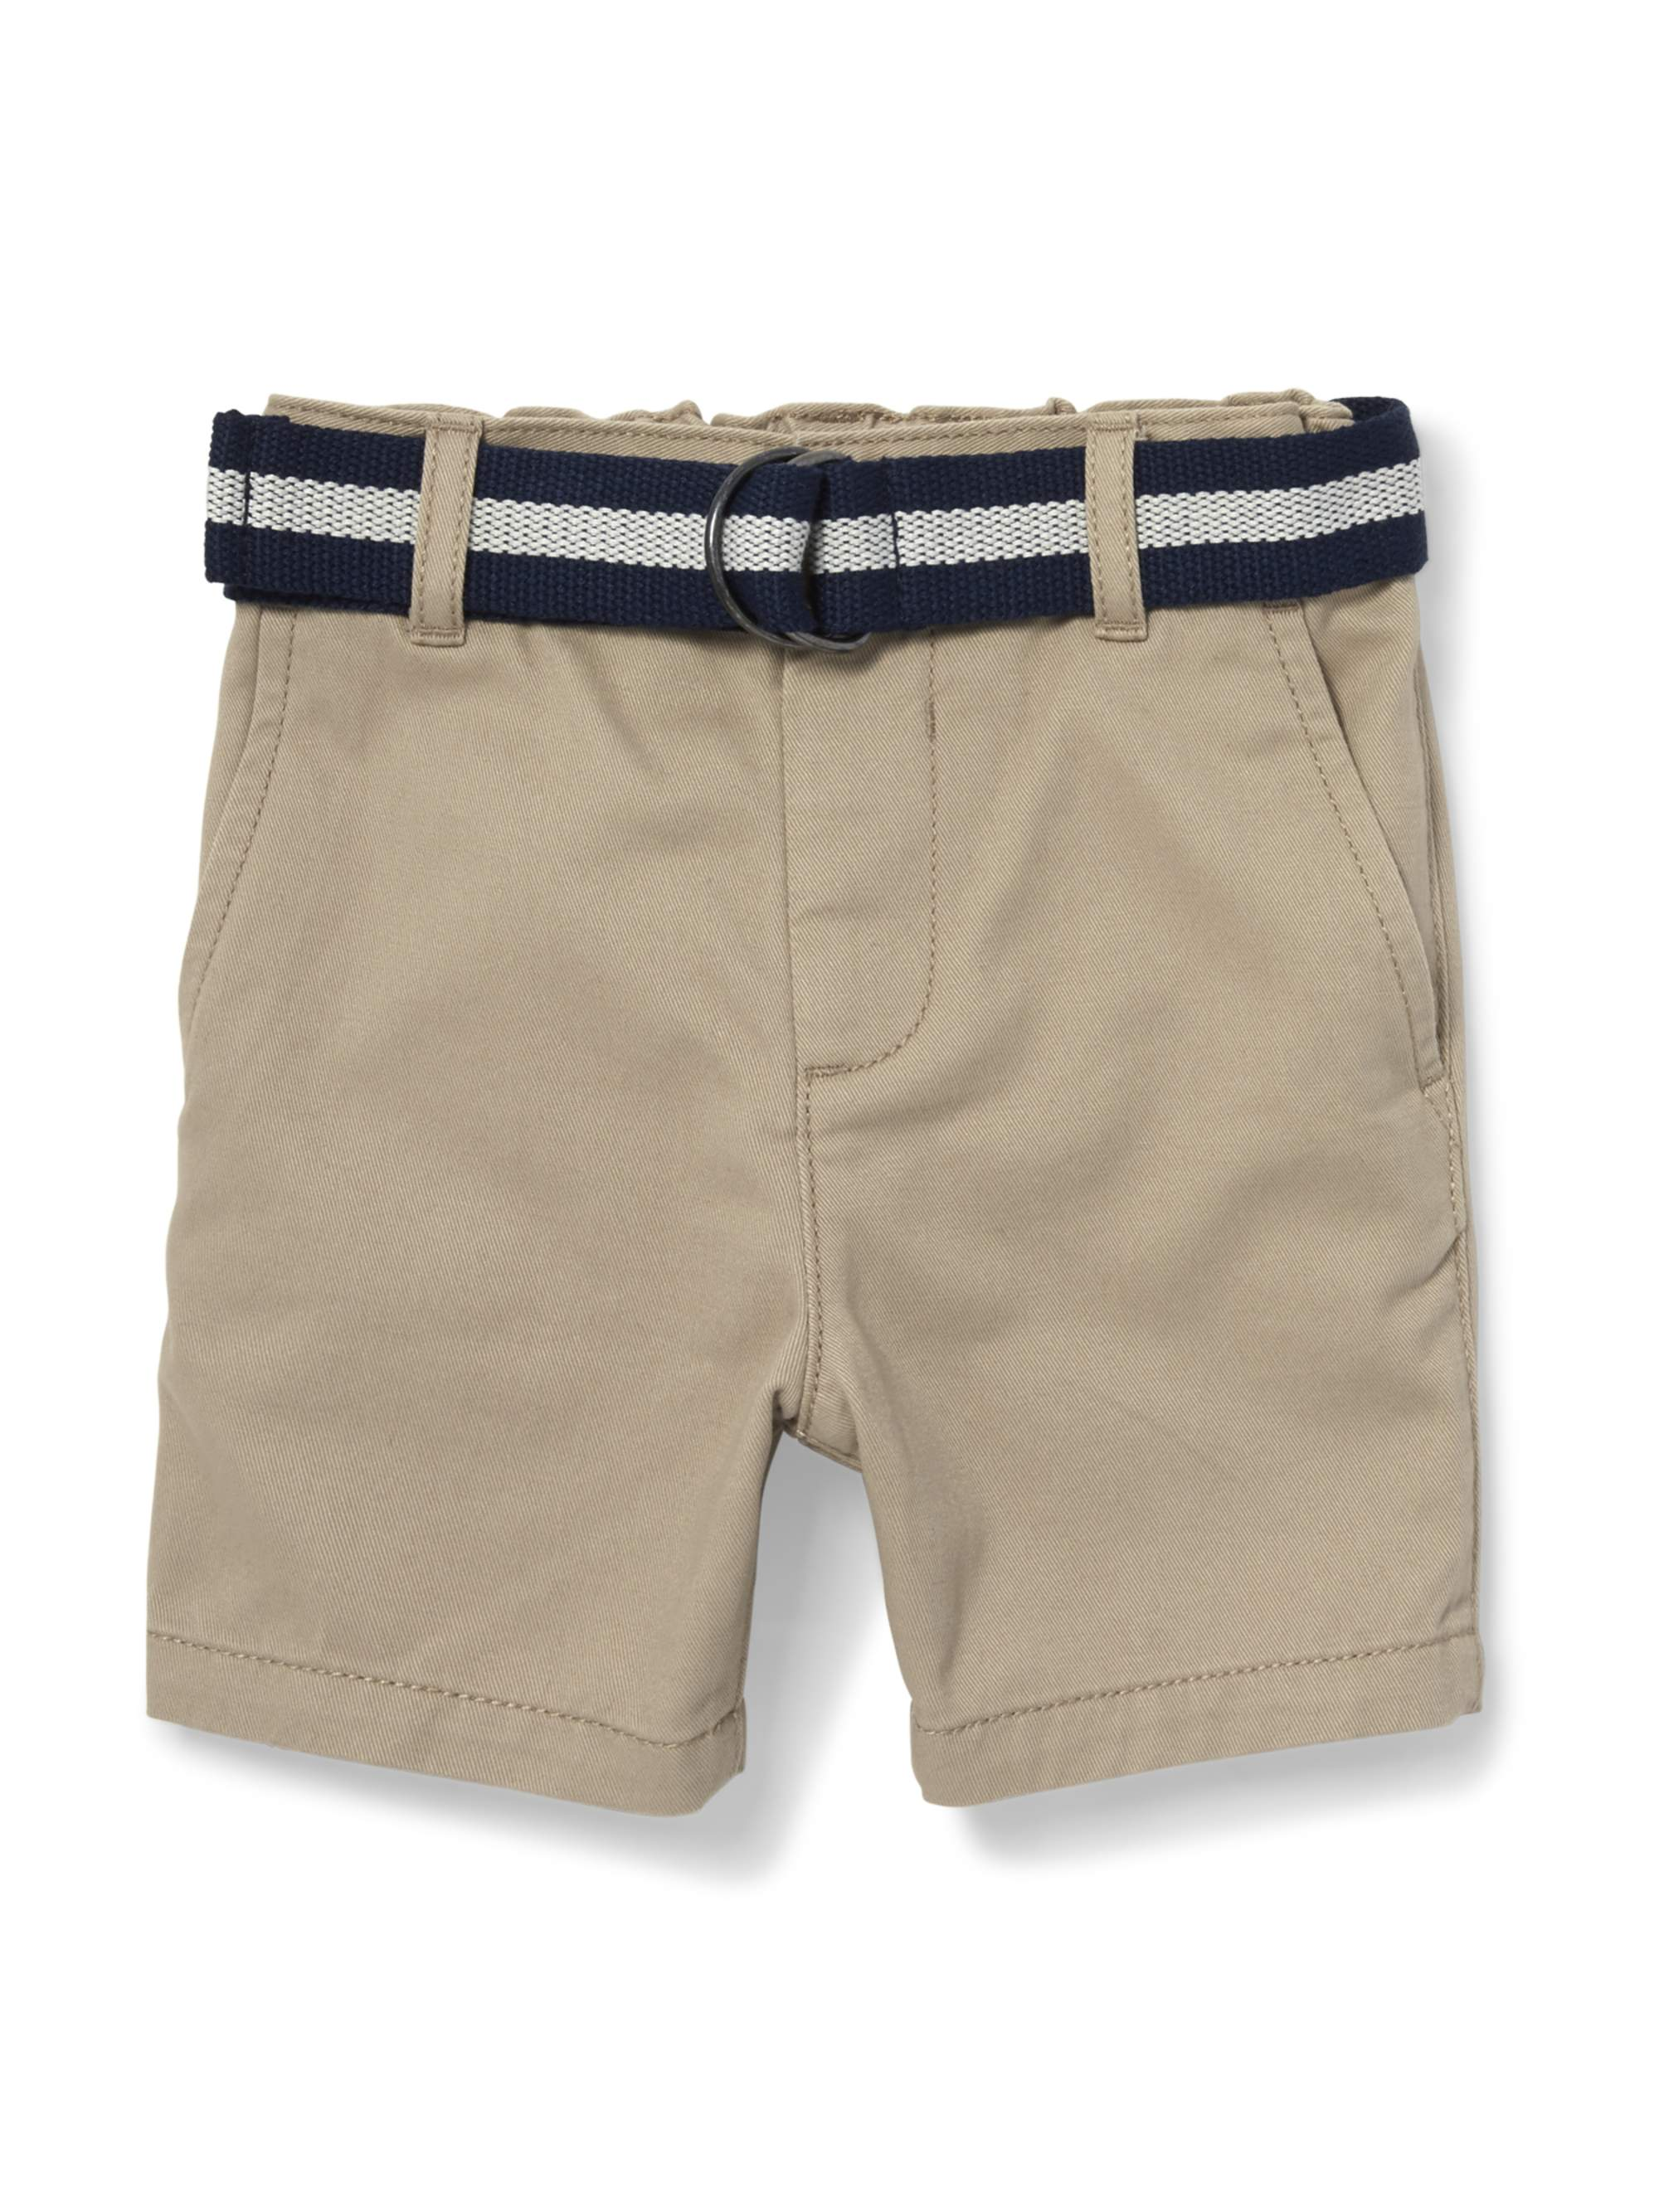 Belted Flat Front Chino Short (Baby Boys & Toddler Boys)